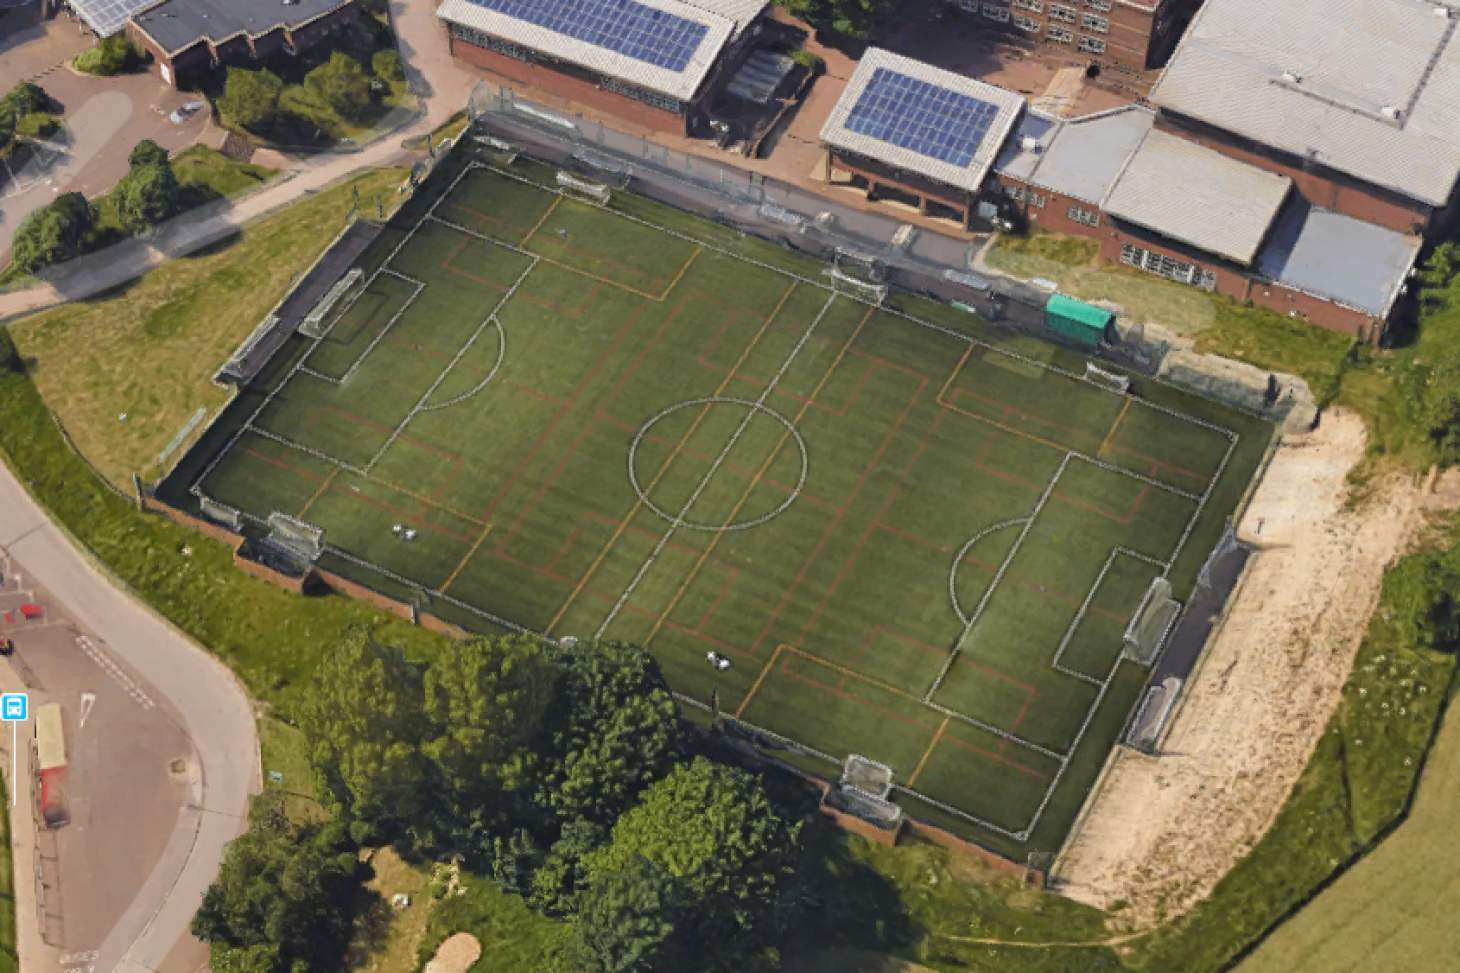 PlayFootball Brighton 6 a side | 3G Astroturf football pitch